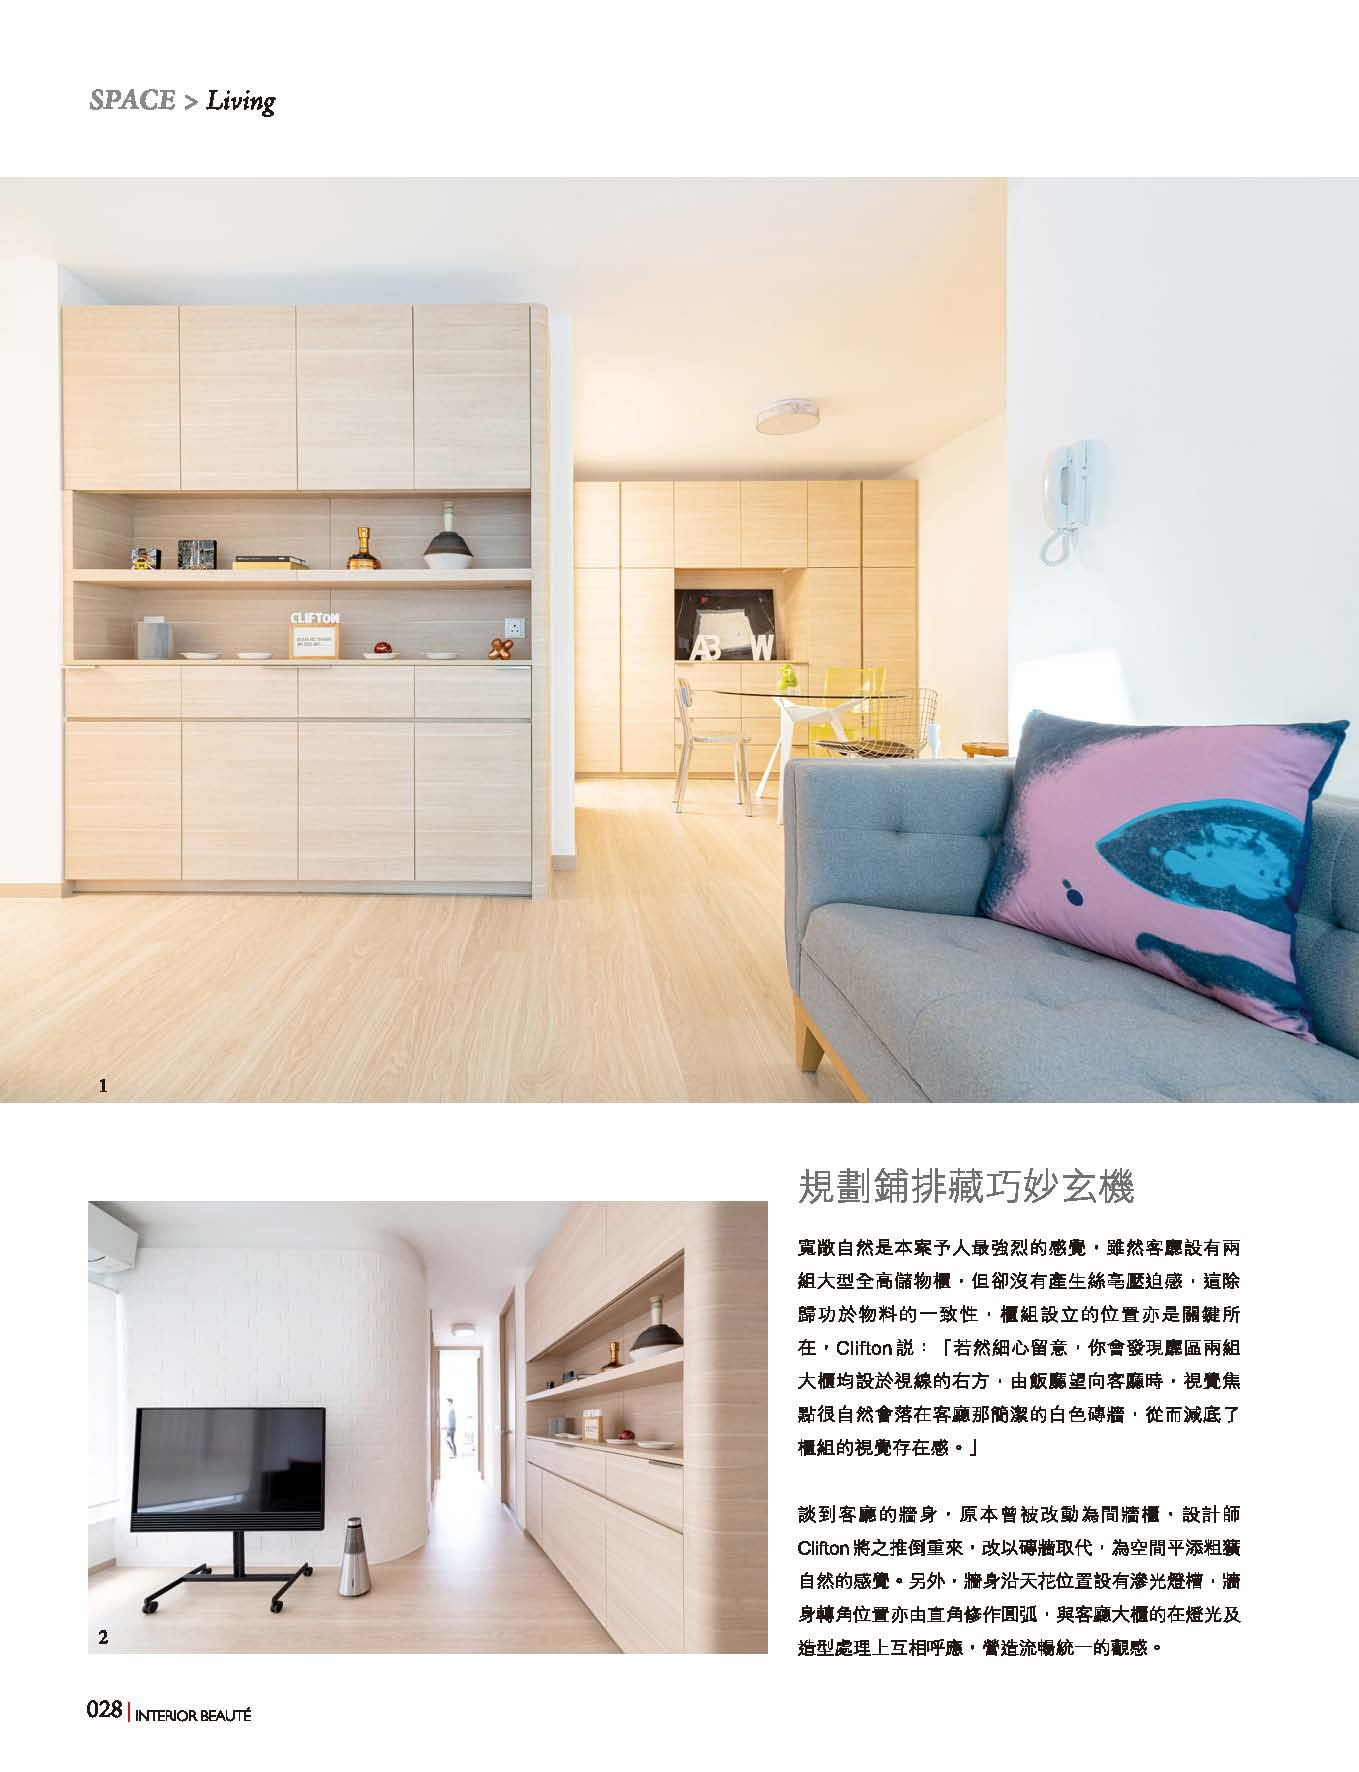 Interior Beaute TKS 04 April 2020 Issue Page 6